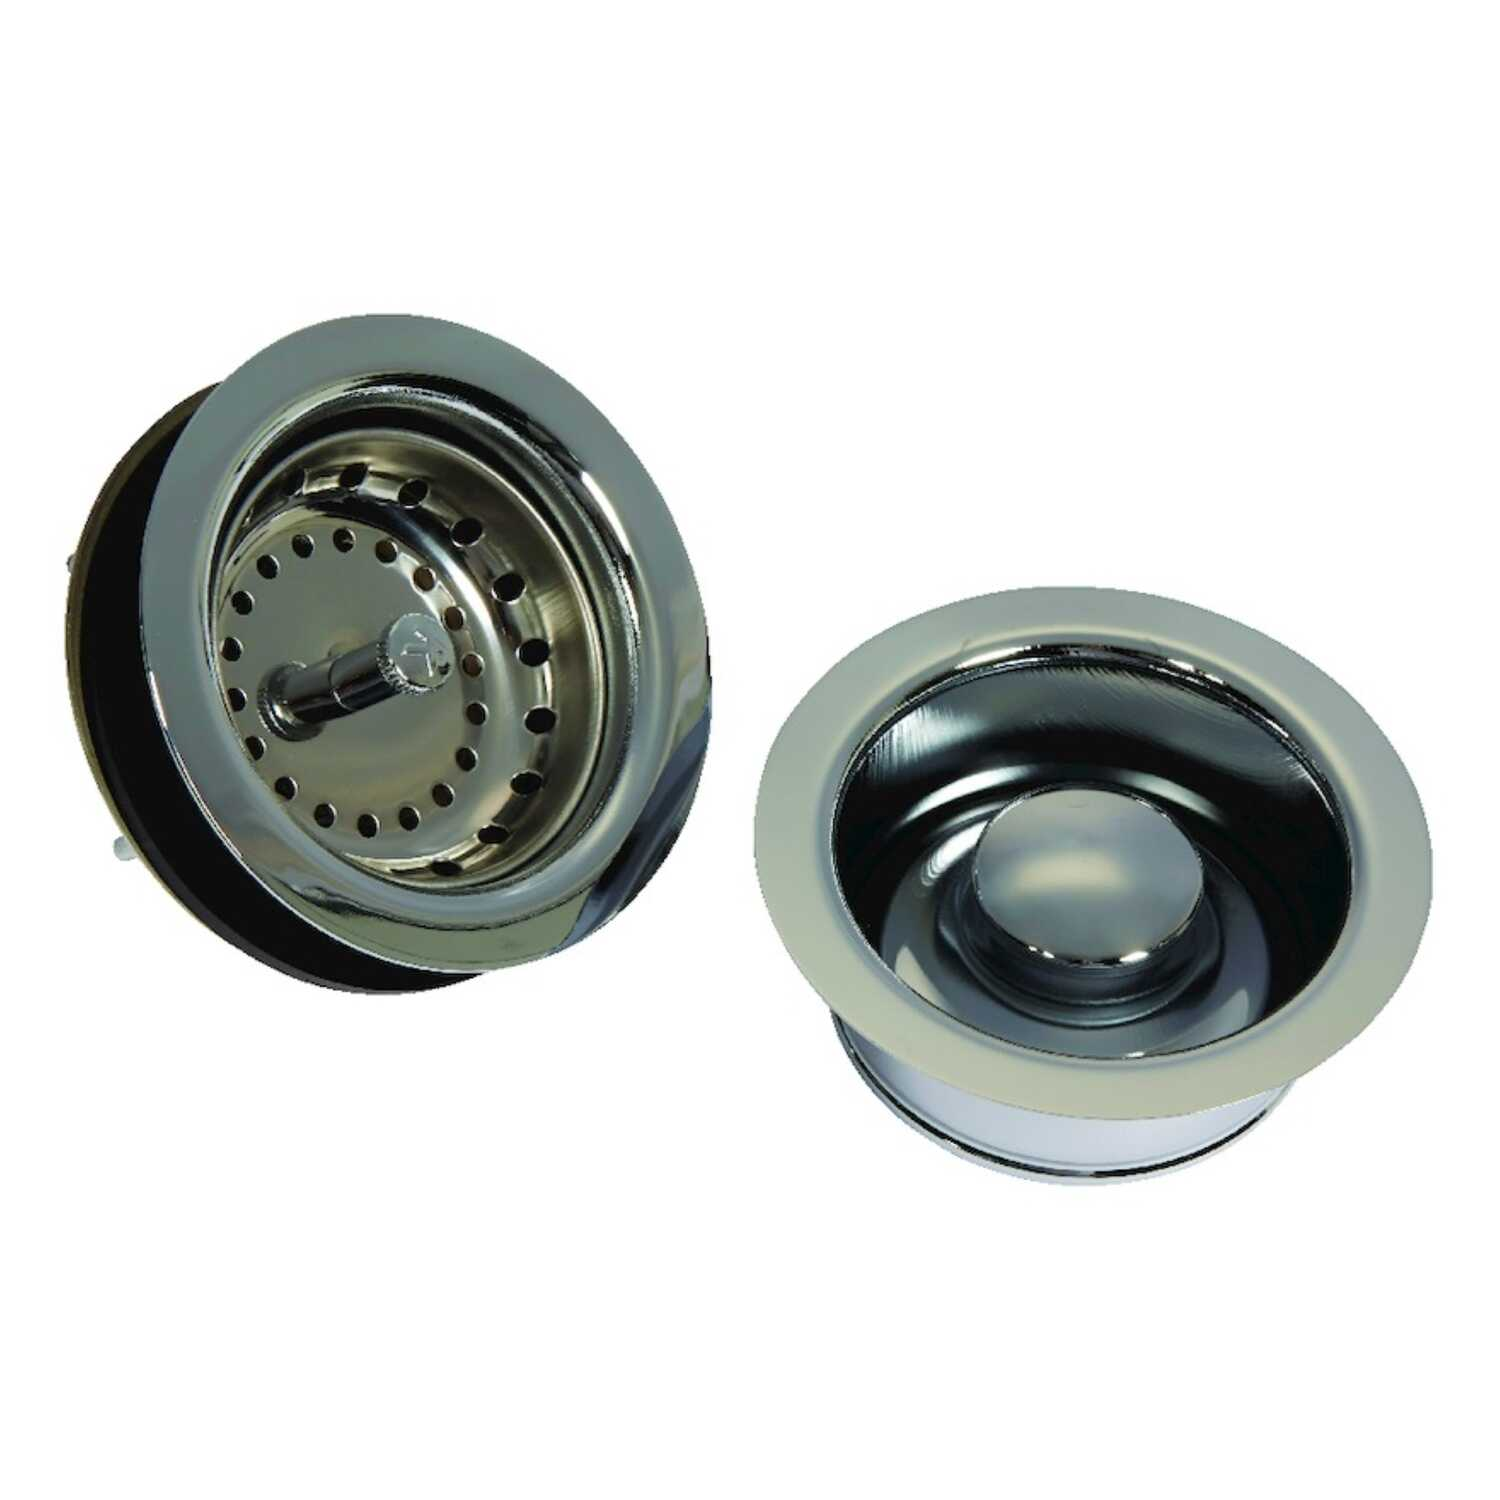 Ace  3 1/2 in. Polished Chrome  Brass  Strainer Assembly and Disposal Flange Set